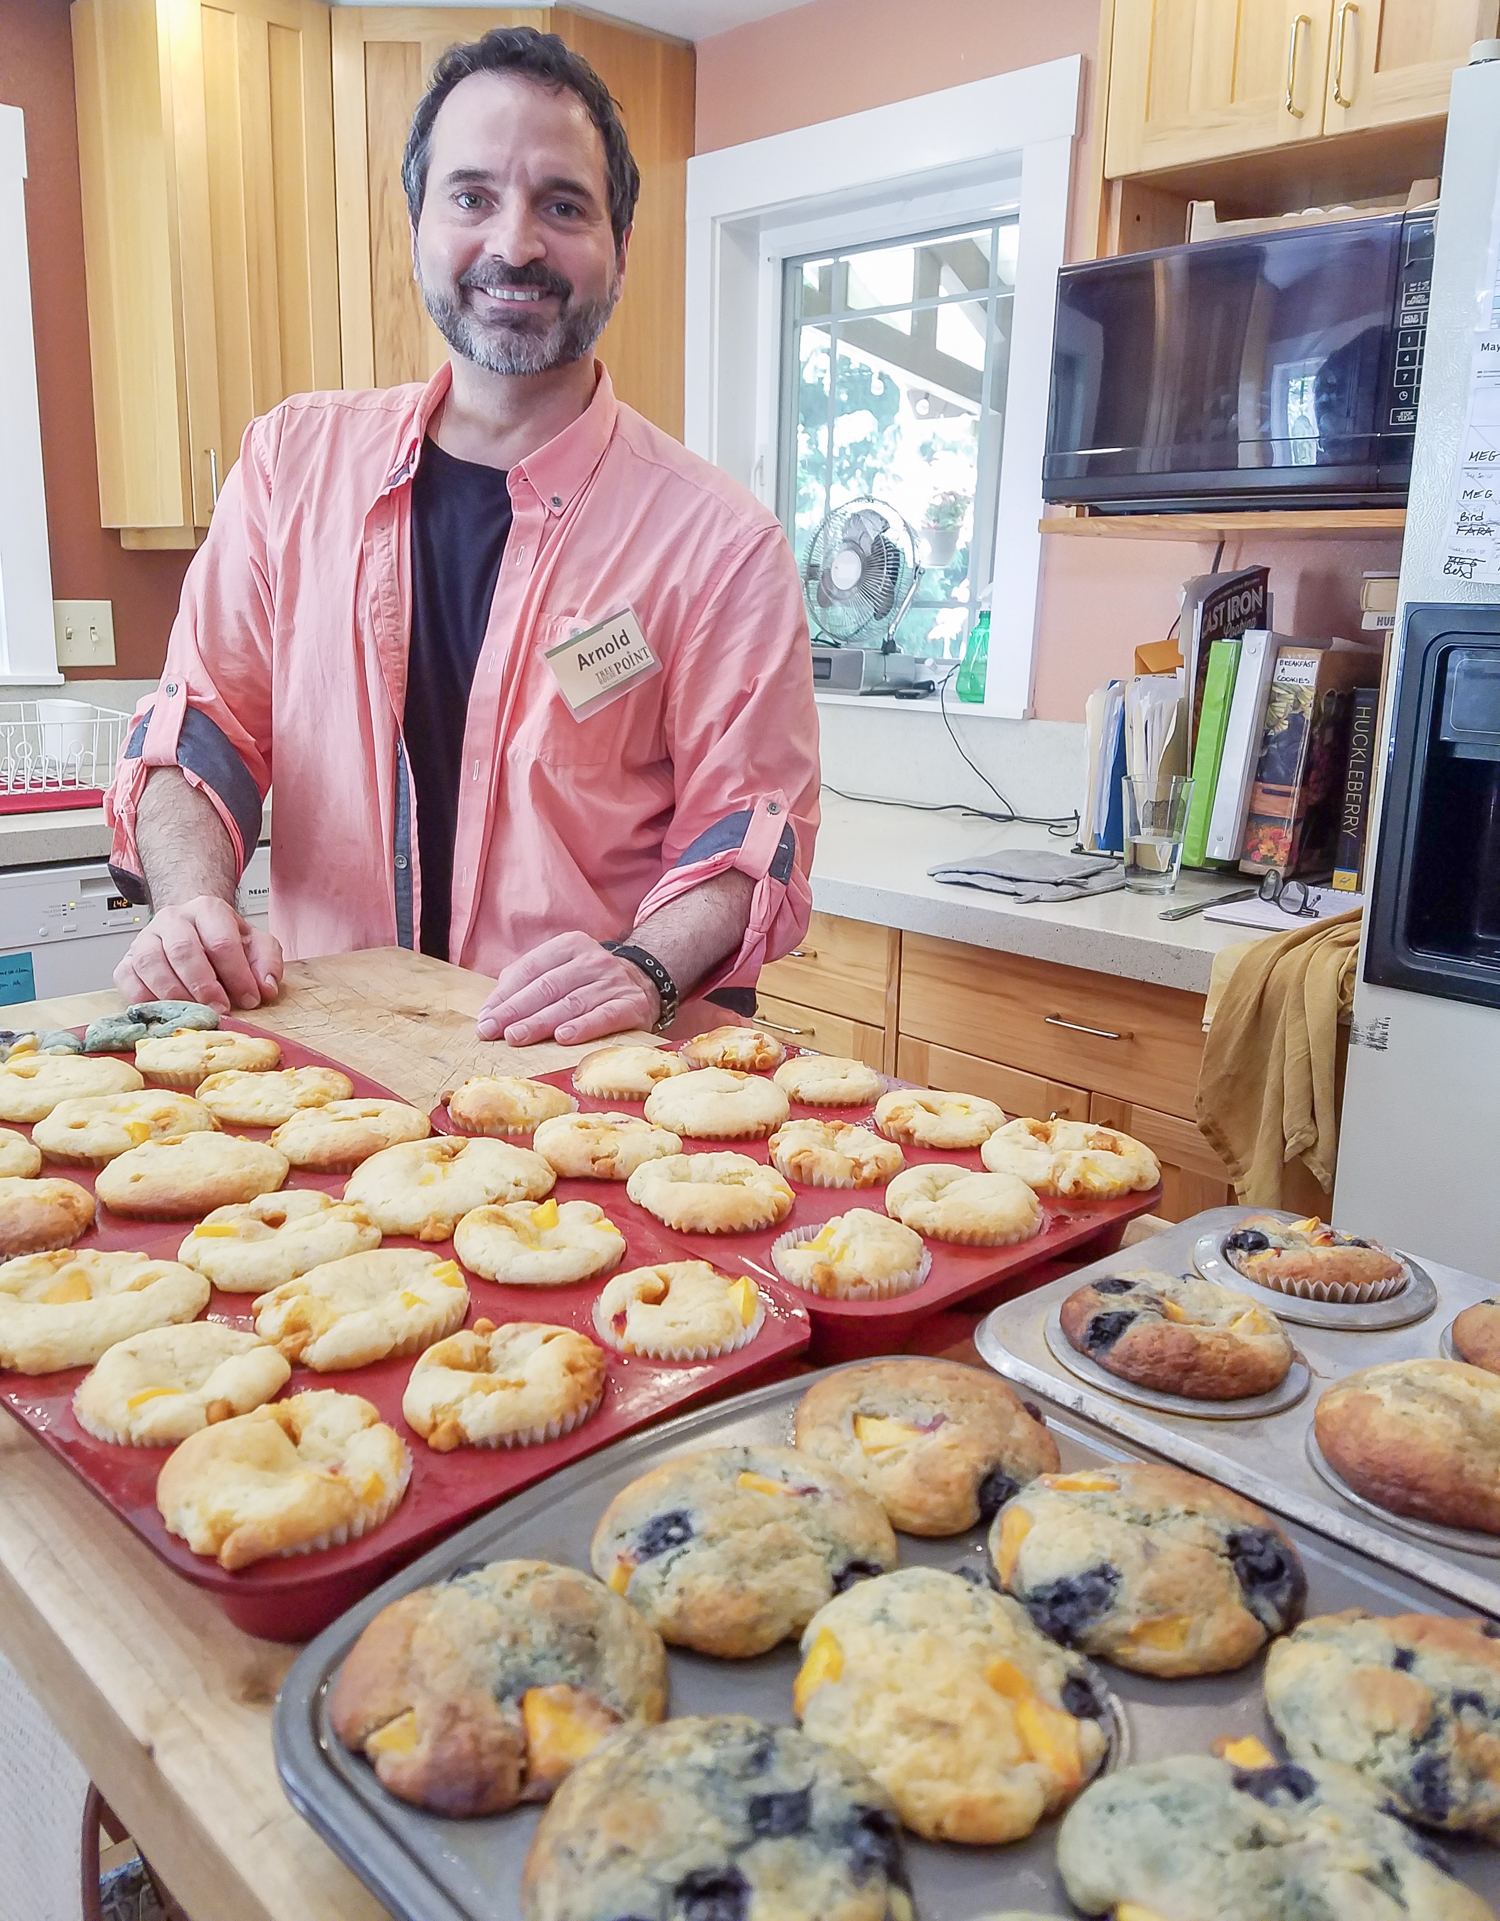 Kitchen Magic! Arnold  J. Mungioli surrounded by muffins in the kitchen at Treehouse Point. All photos courtesy of Arnold.